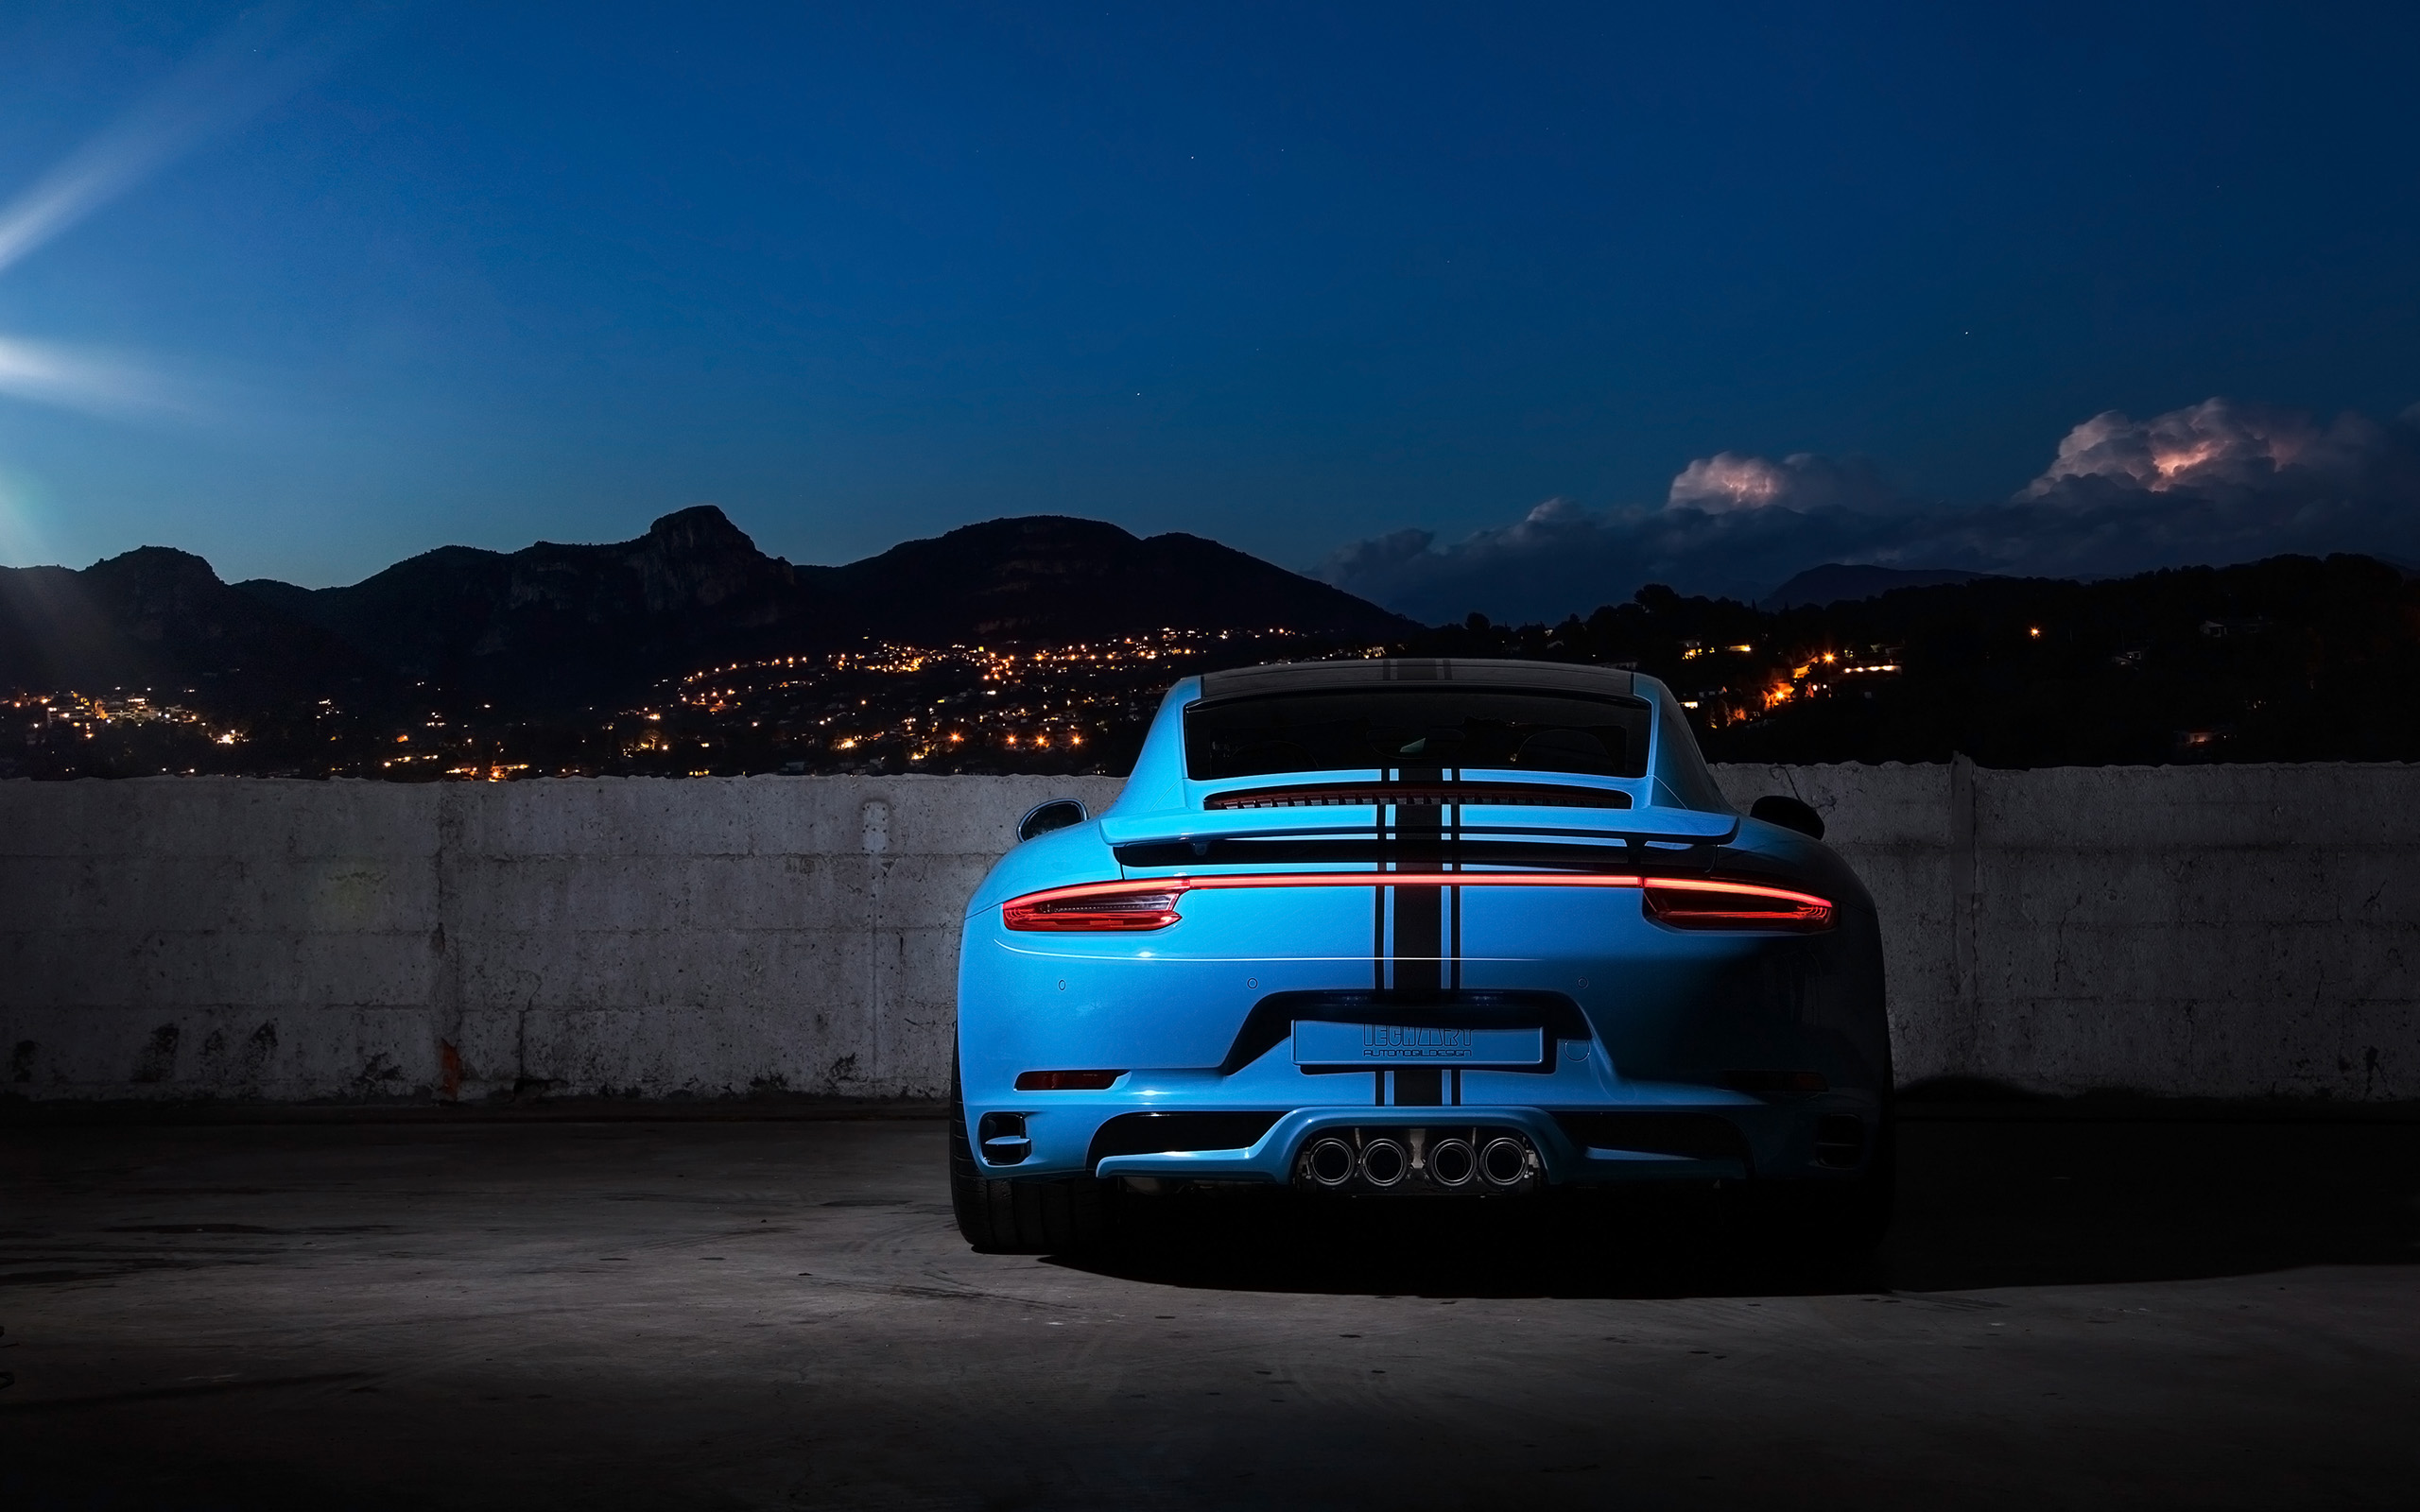 Porsche 911 4k wallpaper   Best Wallpaper for 2560x1600